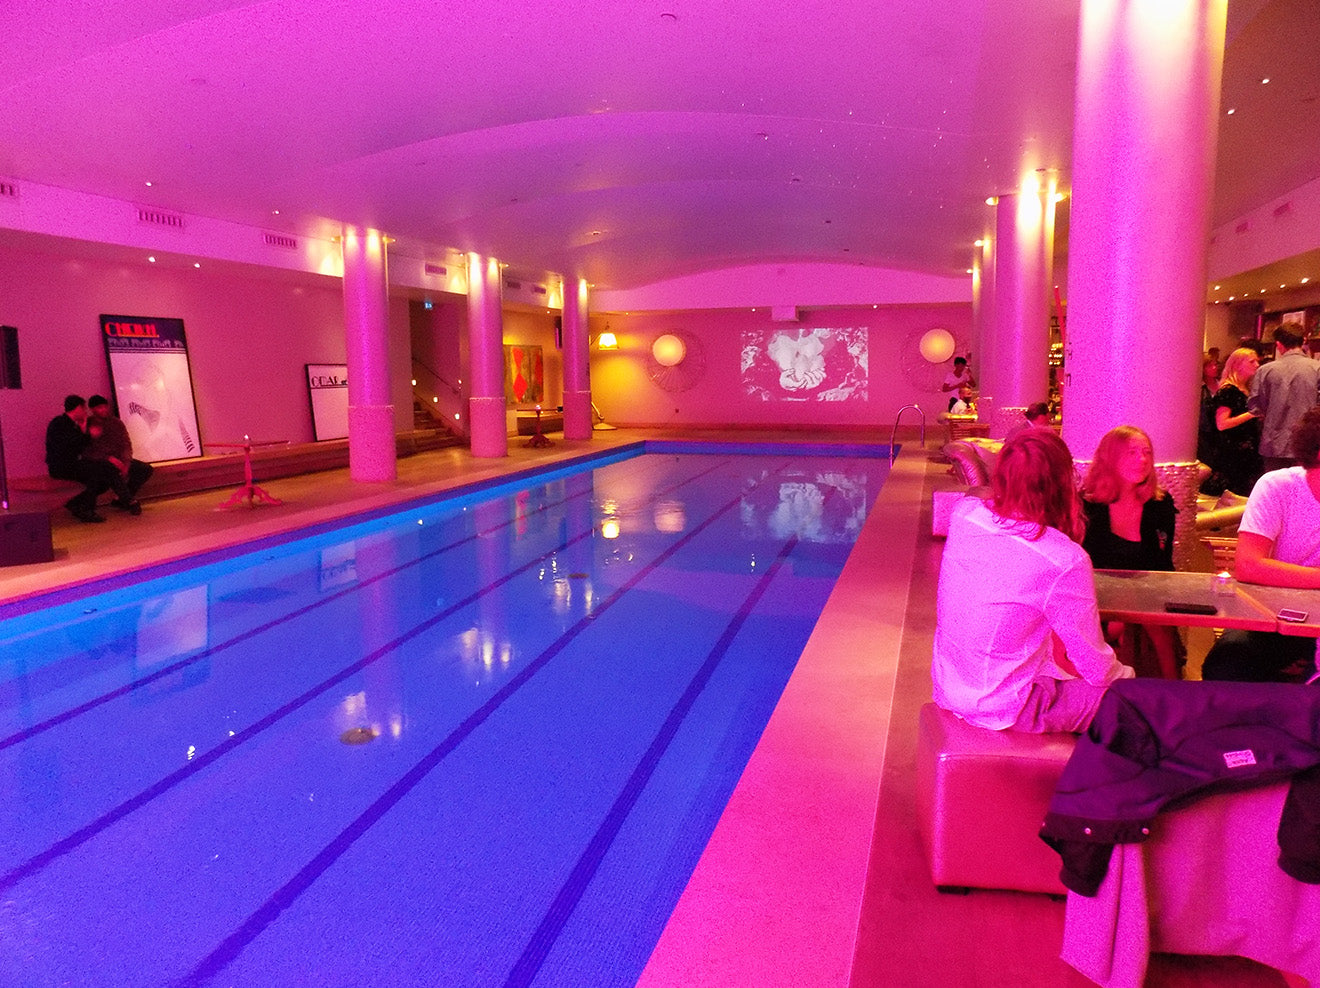 Swimming pool surrounded by artwork at the Haymarket Hotel London